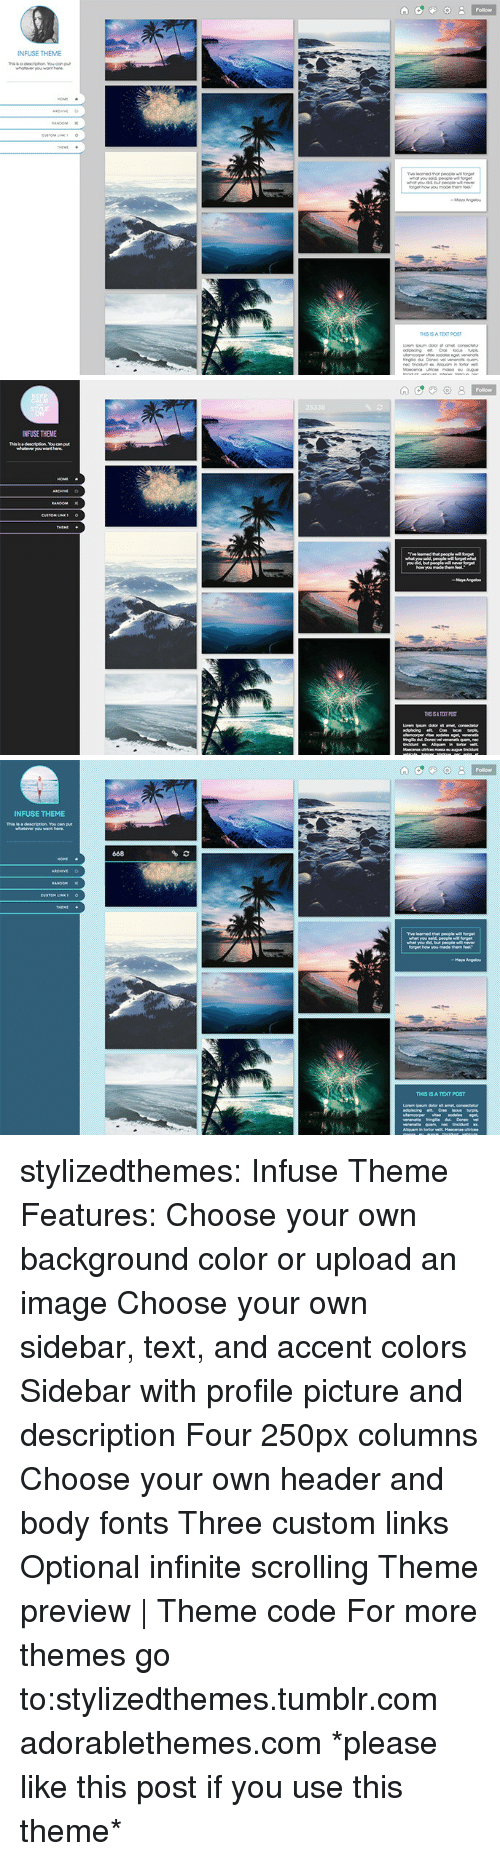 links: Follow  or  NFUSE THEME   INFUSE THEME   INFUSE THEME  This is a  668  Tve learned that people forget  THIS IS A TEXT POST stylizedthemes: Infuse Theme Features:  Choose your own background color or upload an image  Choose your own sidebar, text, and accent colors  Sidebar with profile picture and description Four 250px columns  Choose your own header and body fonts Three custom links Optional infinite scrolling  Theme preview | Theme code  For more themes go to:stylizedthemes.tumblr.com  adorablethemes.com *please like this post if you use this theme*